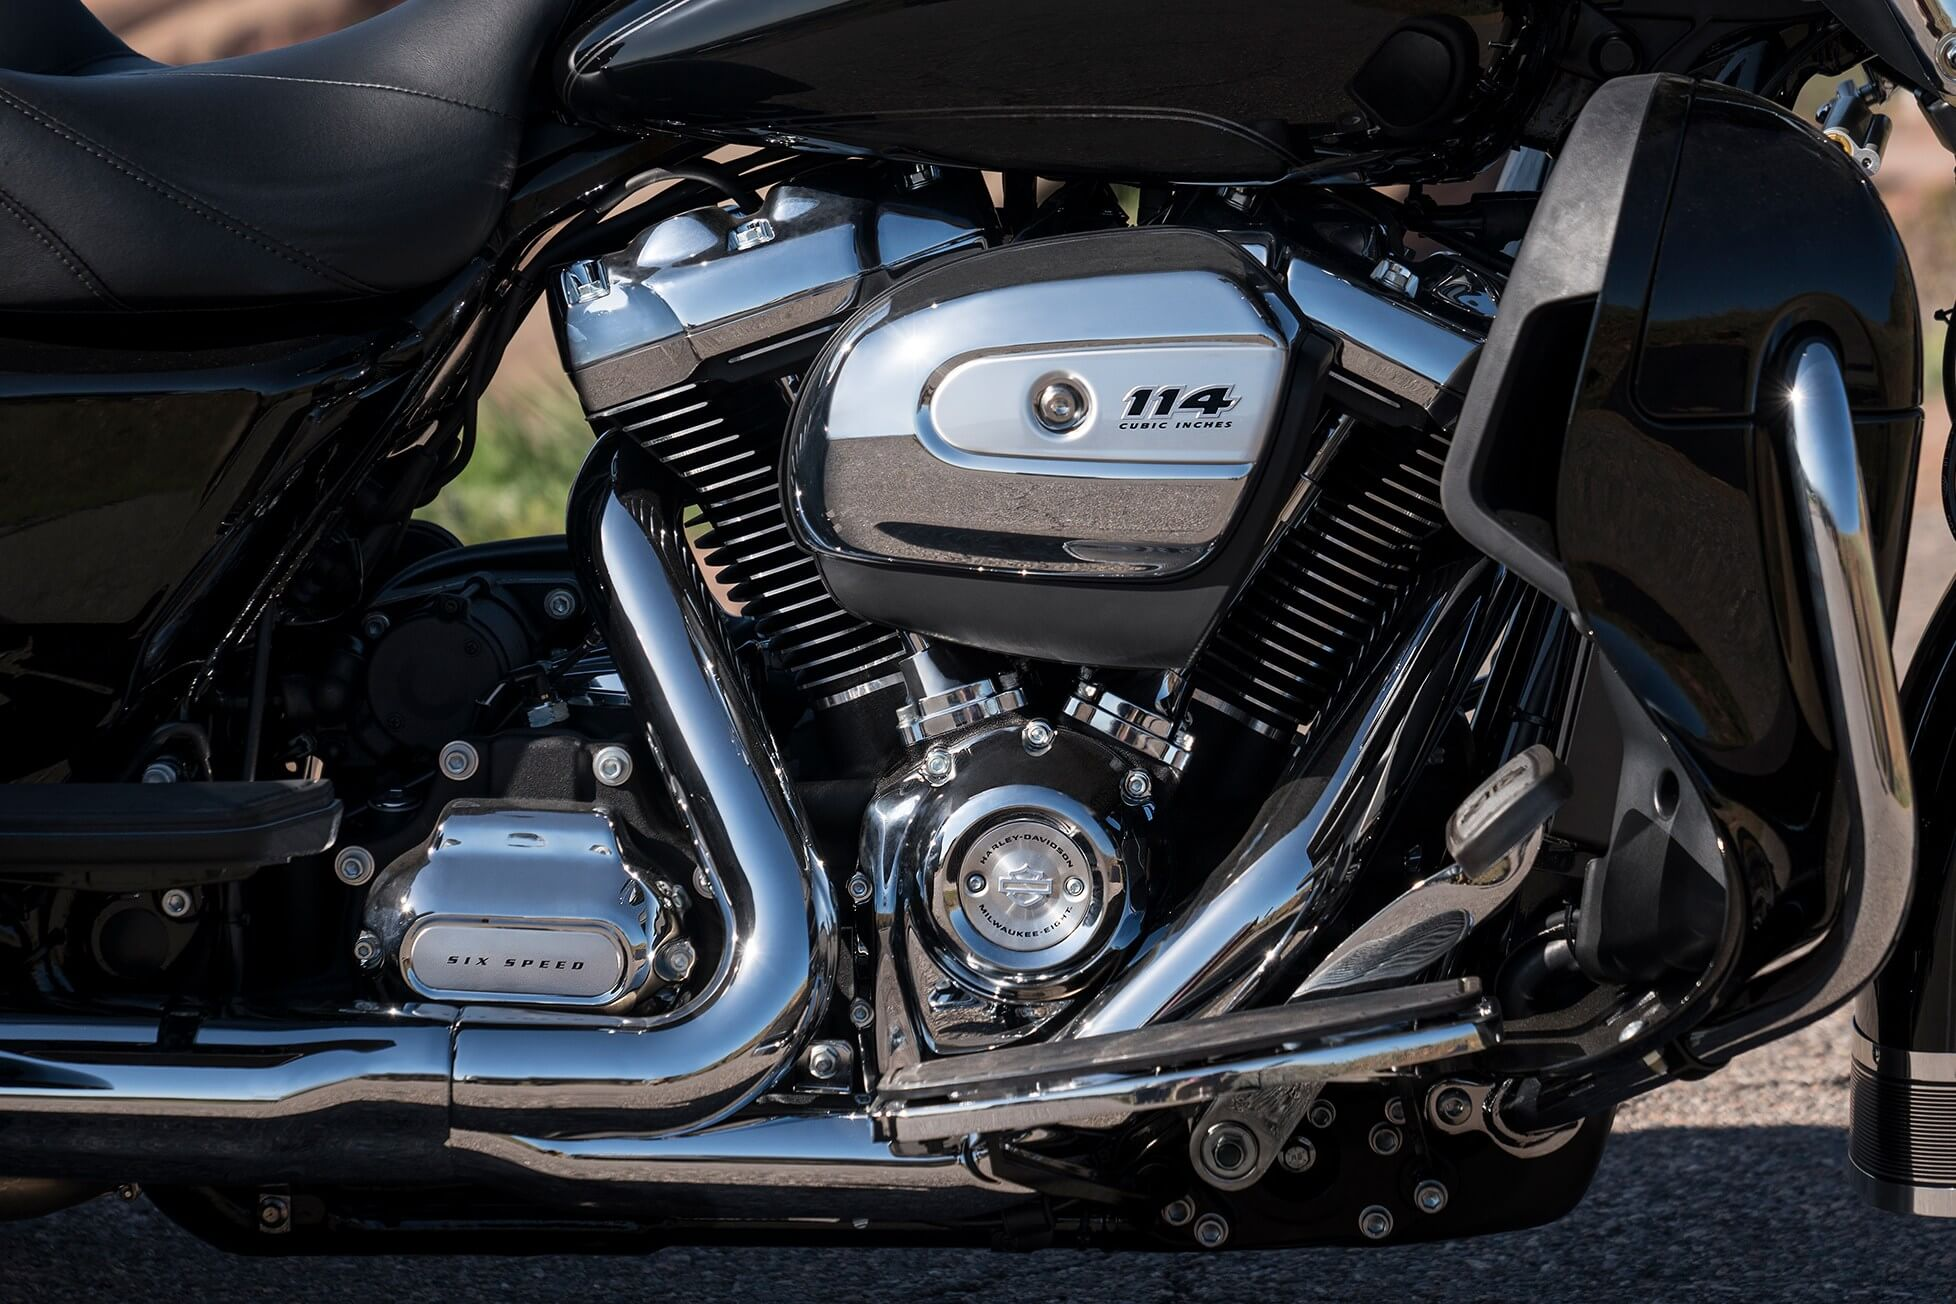 Twin-Cooled Milwaukee-Eight® 11